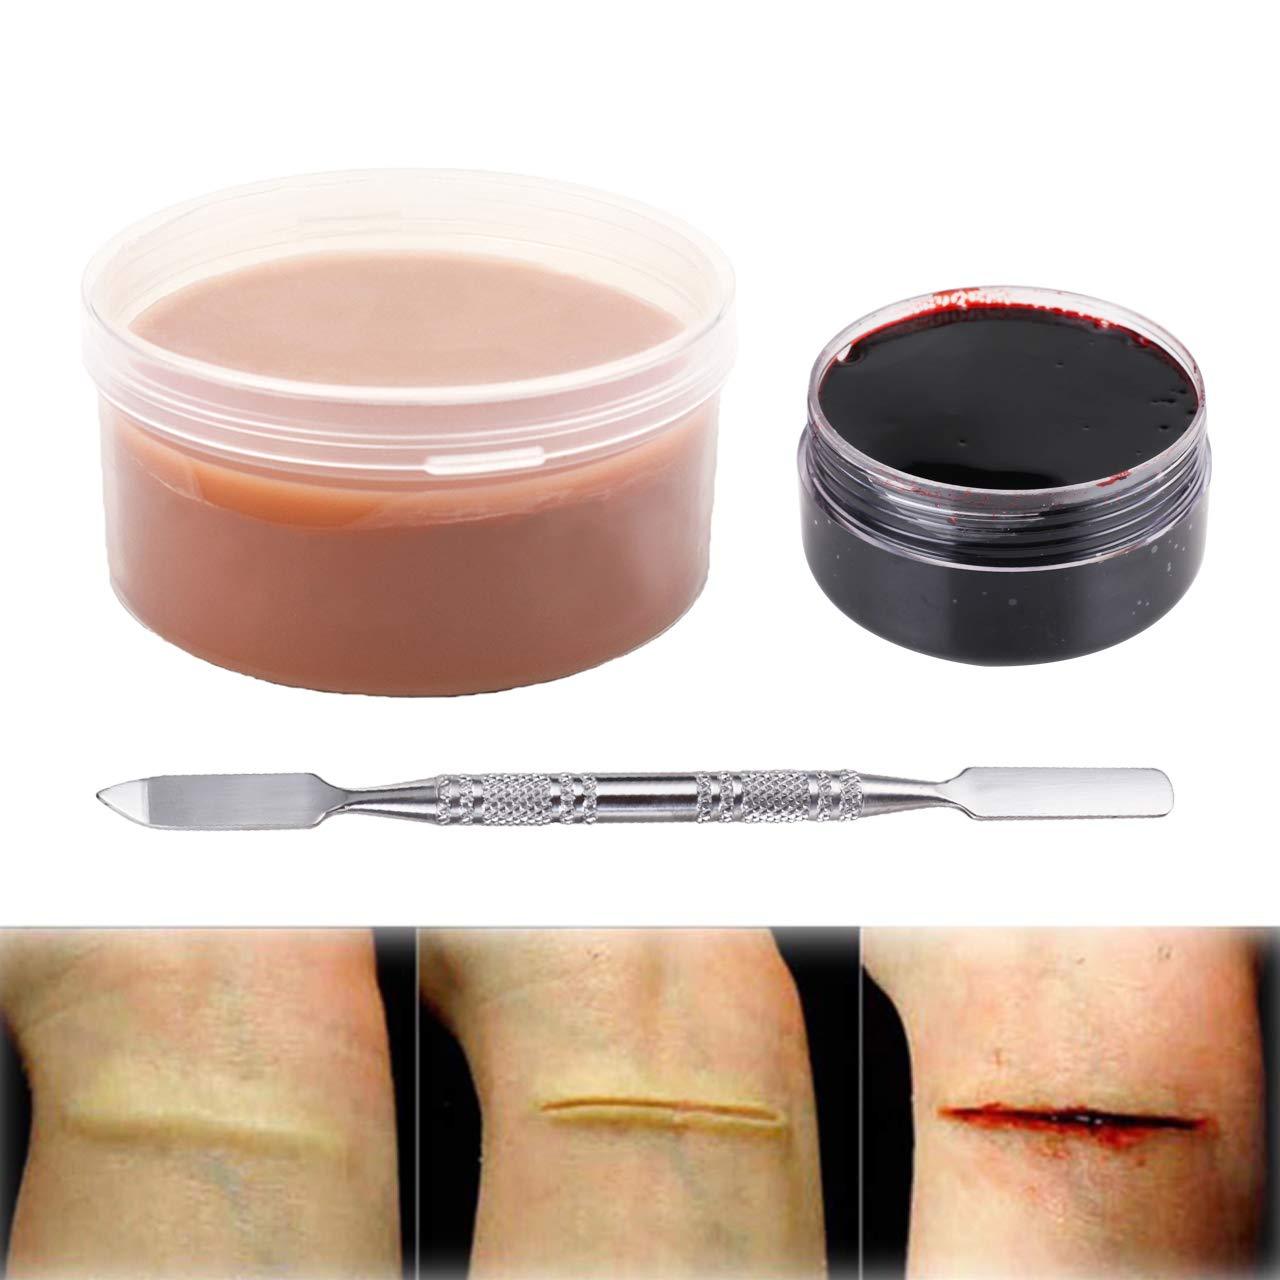 MEICOLY Makeup Skin Wax Special Effects Halloween Set Stage Fake Wound Scar,Molding Scars Wax with Spatula,Coagulated Blood Gel,01